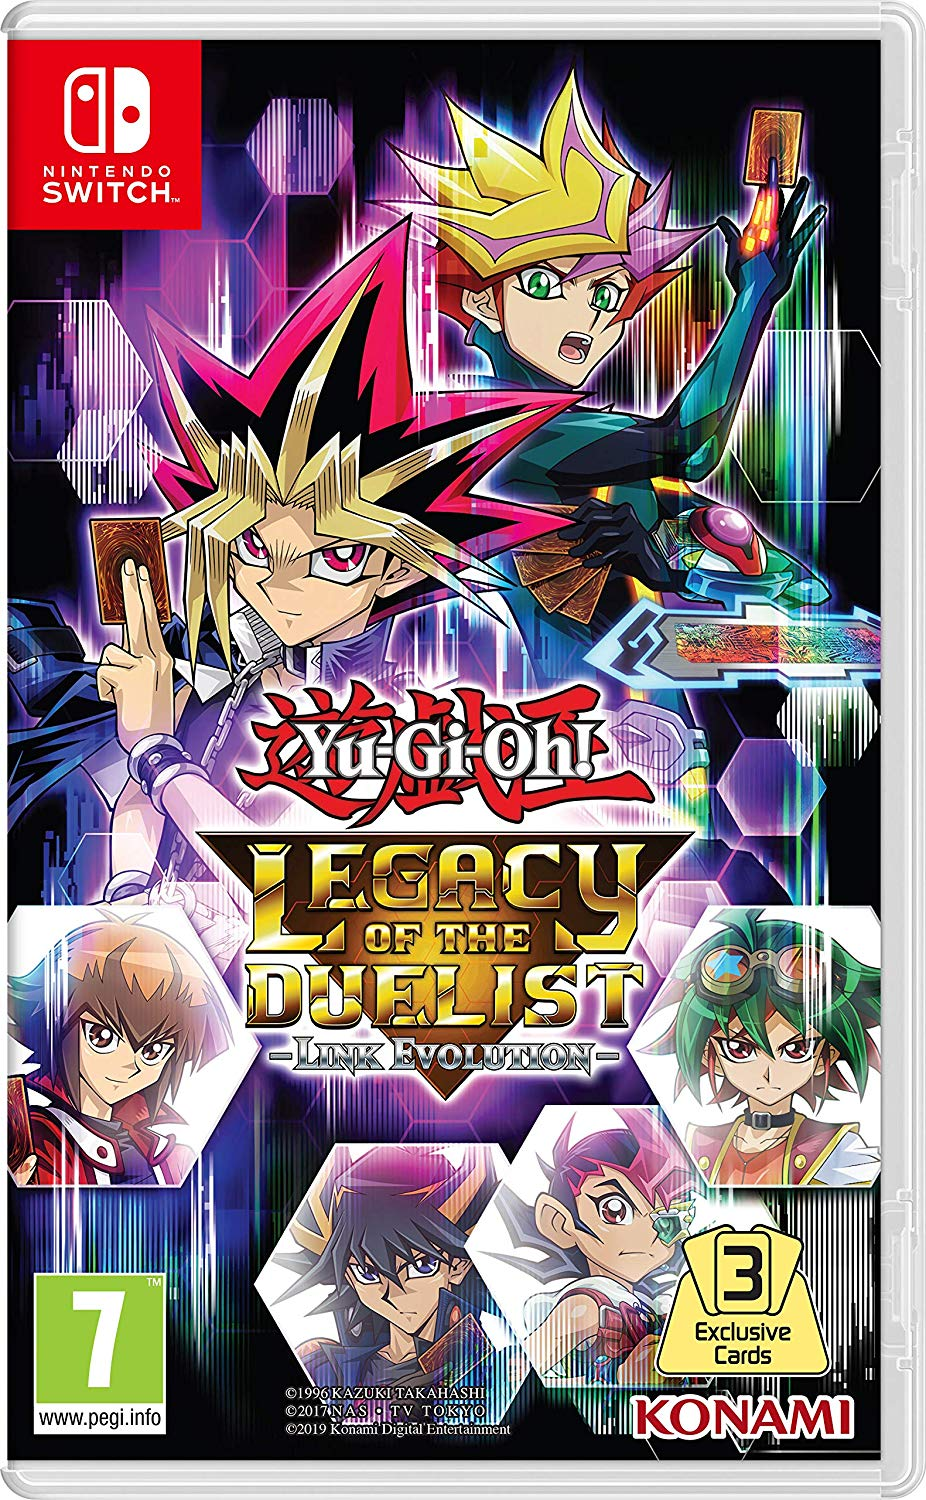 Yu-Gi-Oh KONLODNS Legacy of The Duelist Link Evolution